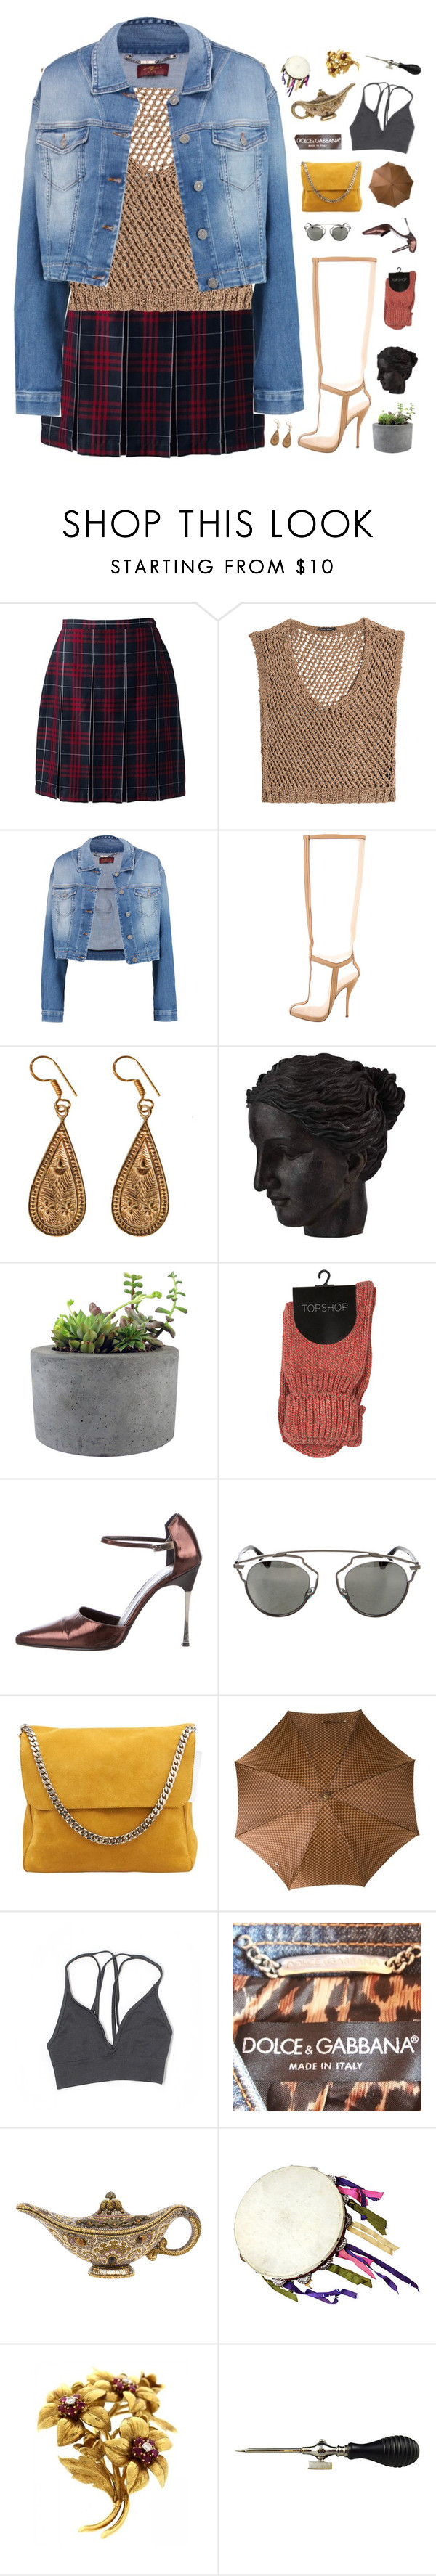 """""""p0wer"""" by frostedfingertips ❤ liked on Polyvore featuring Lands' End, DAMIR DOMA, 7 For All Mankind, Christian Louboutin, Urbiana, Ren-Wil, Rough Fusion, Gucci, Christian Dior and CÉLINE"""